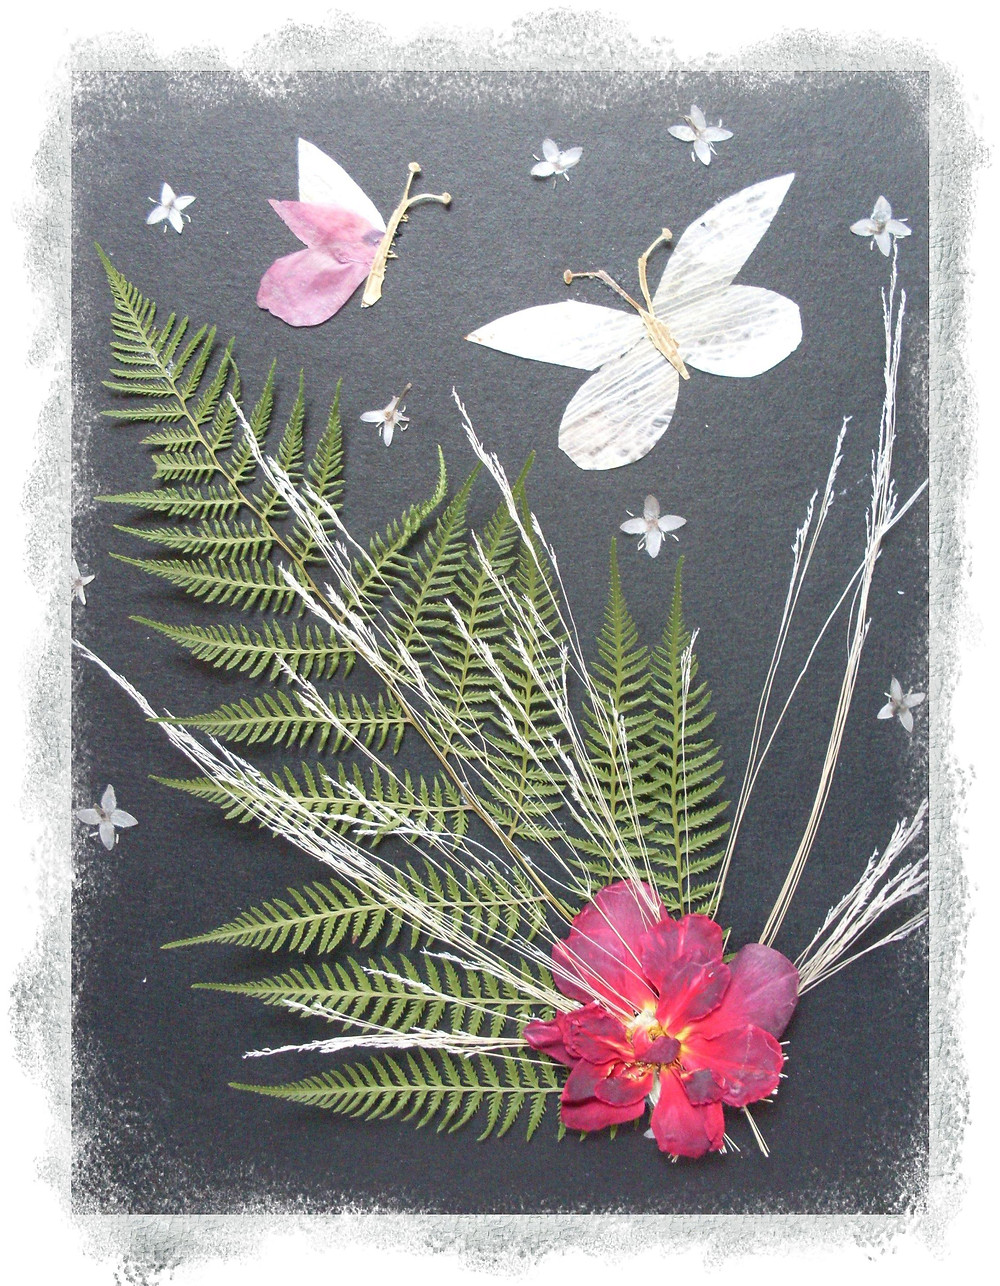 """Pressed Plant Art """"The blooming of the fern"""" It's the night. Fern is blooming. It has a bright red shiny flower. The light from fern flower is attracting butterflies. The stars are in the sky."""